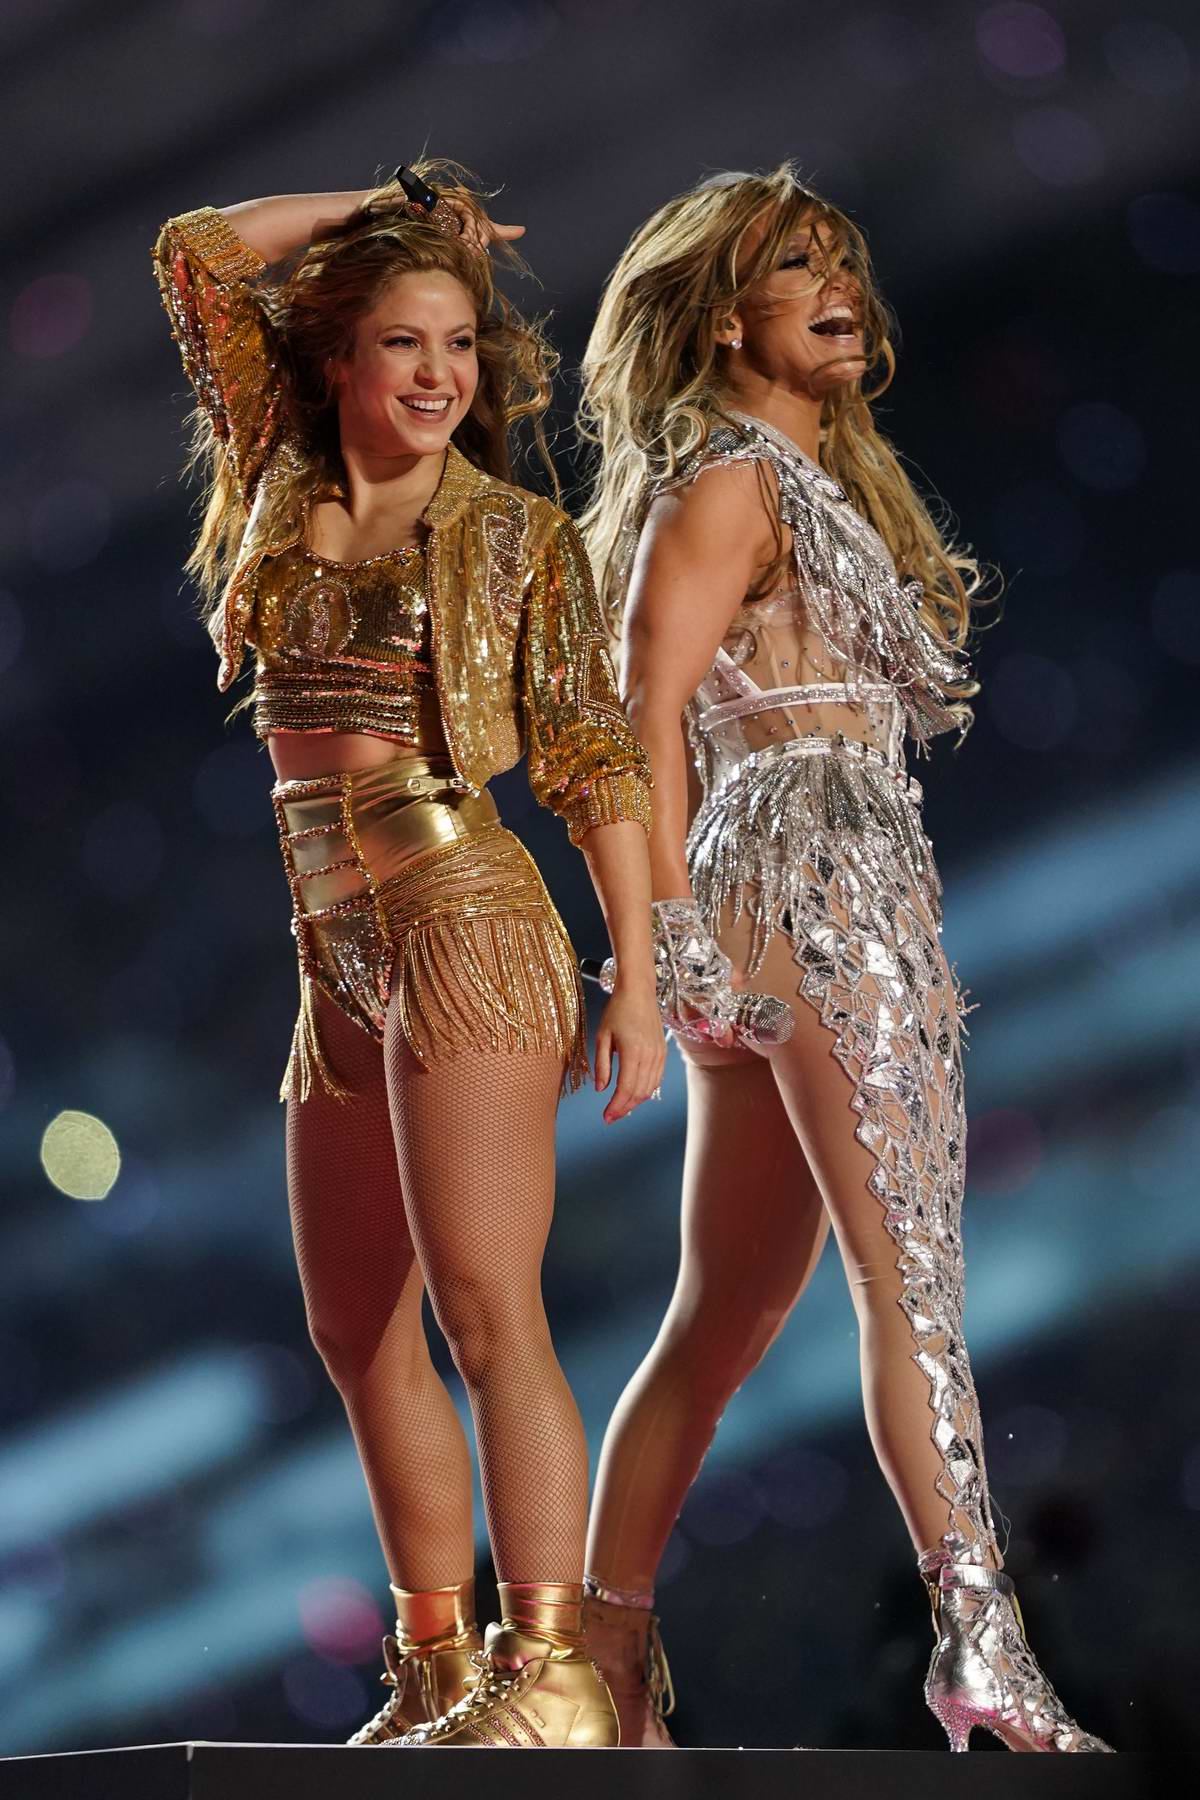 Jennifer Lopez and Shakira perform during the Super Bowl LIV Halftime Show in Miami, Florida